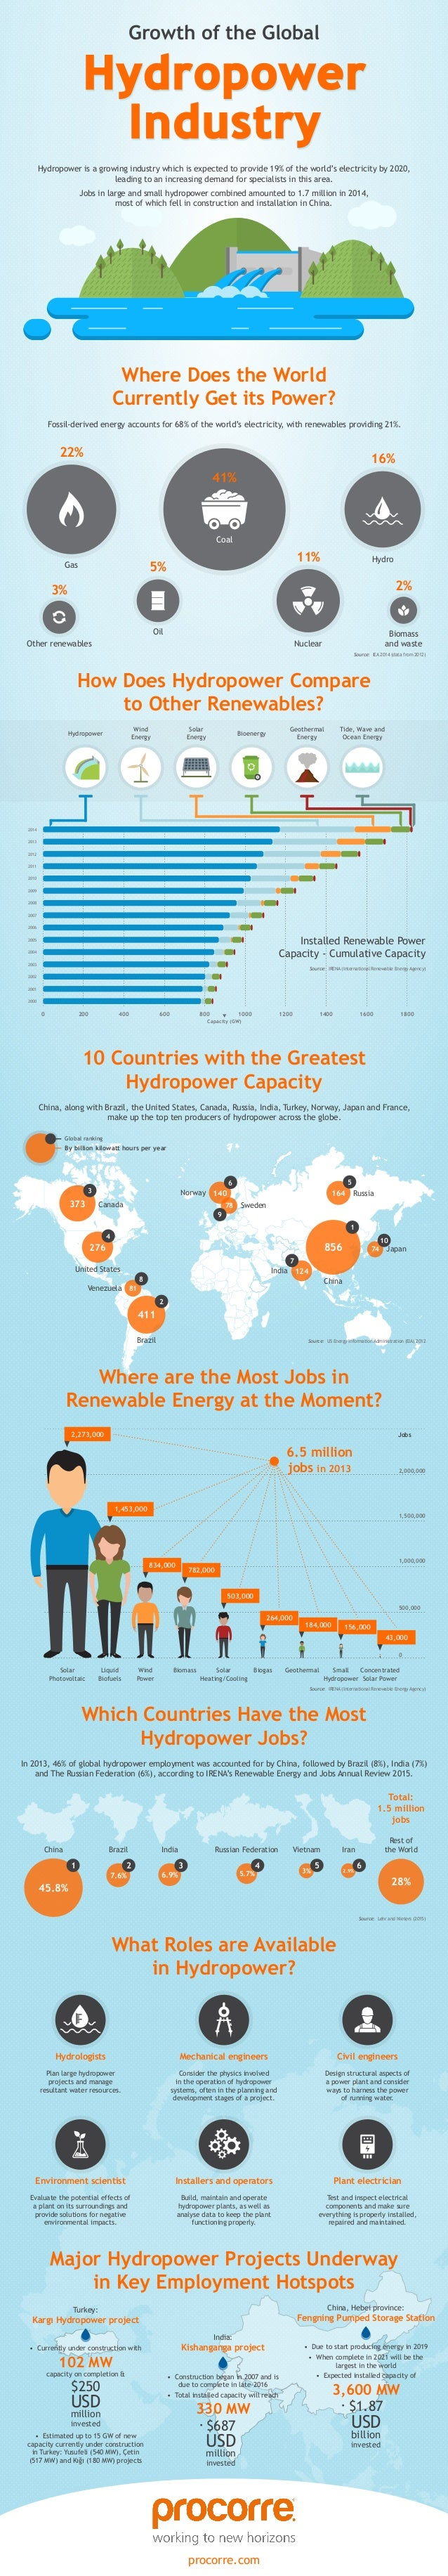 Hydropower Industry Hydropower Industry Hydropower is a growing industry which is expected to provide 19% of the world's e...